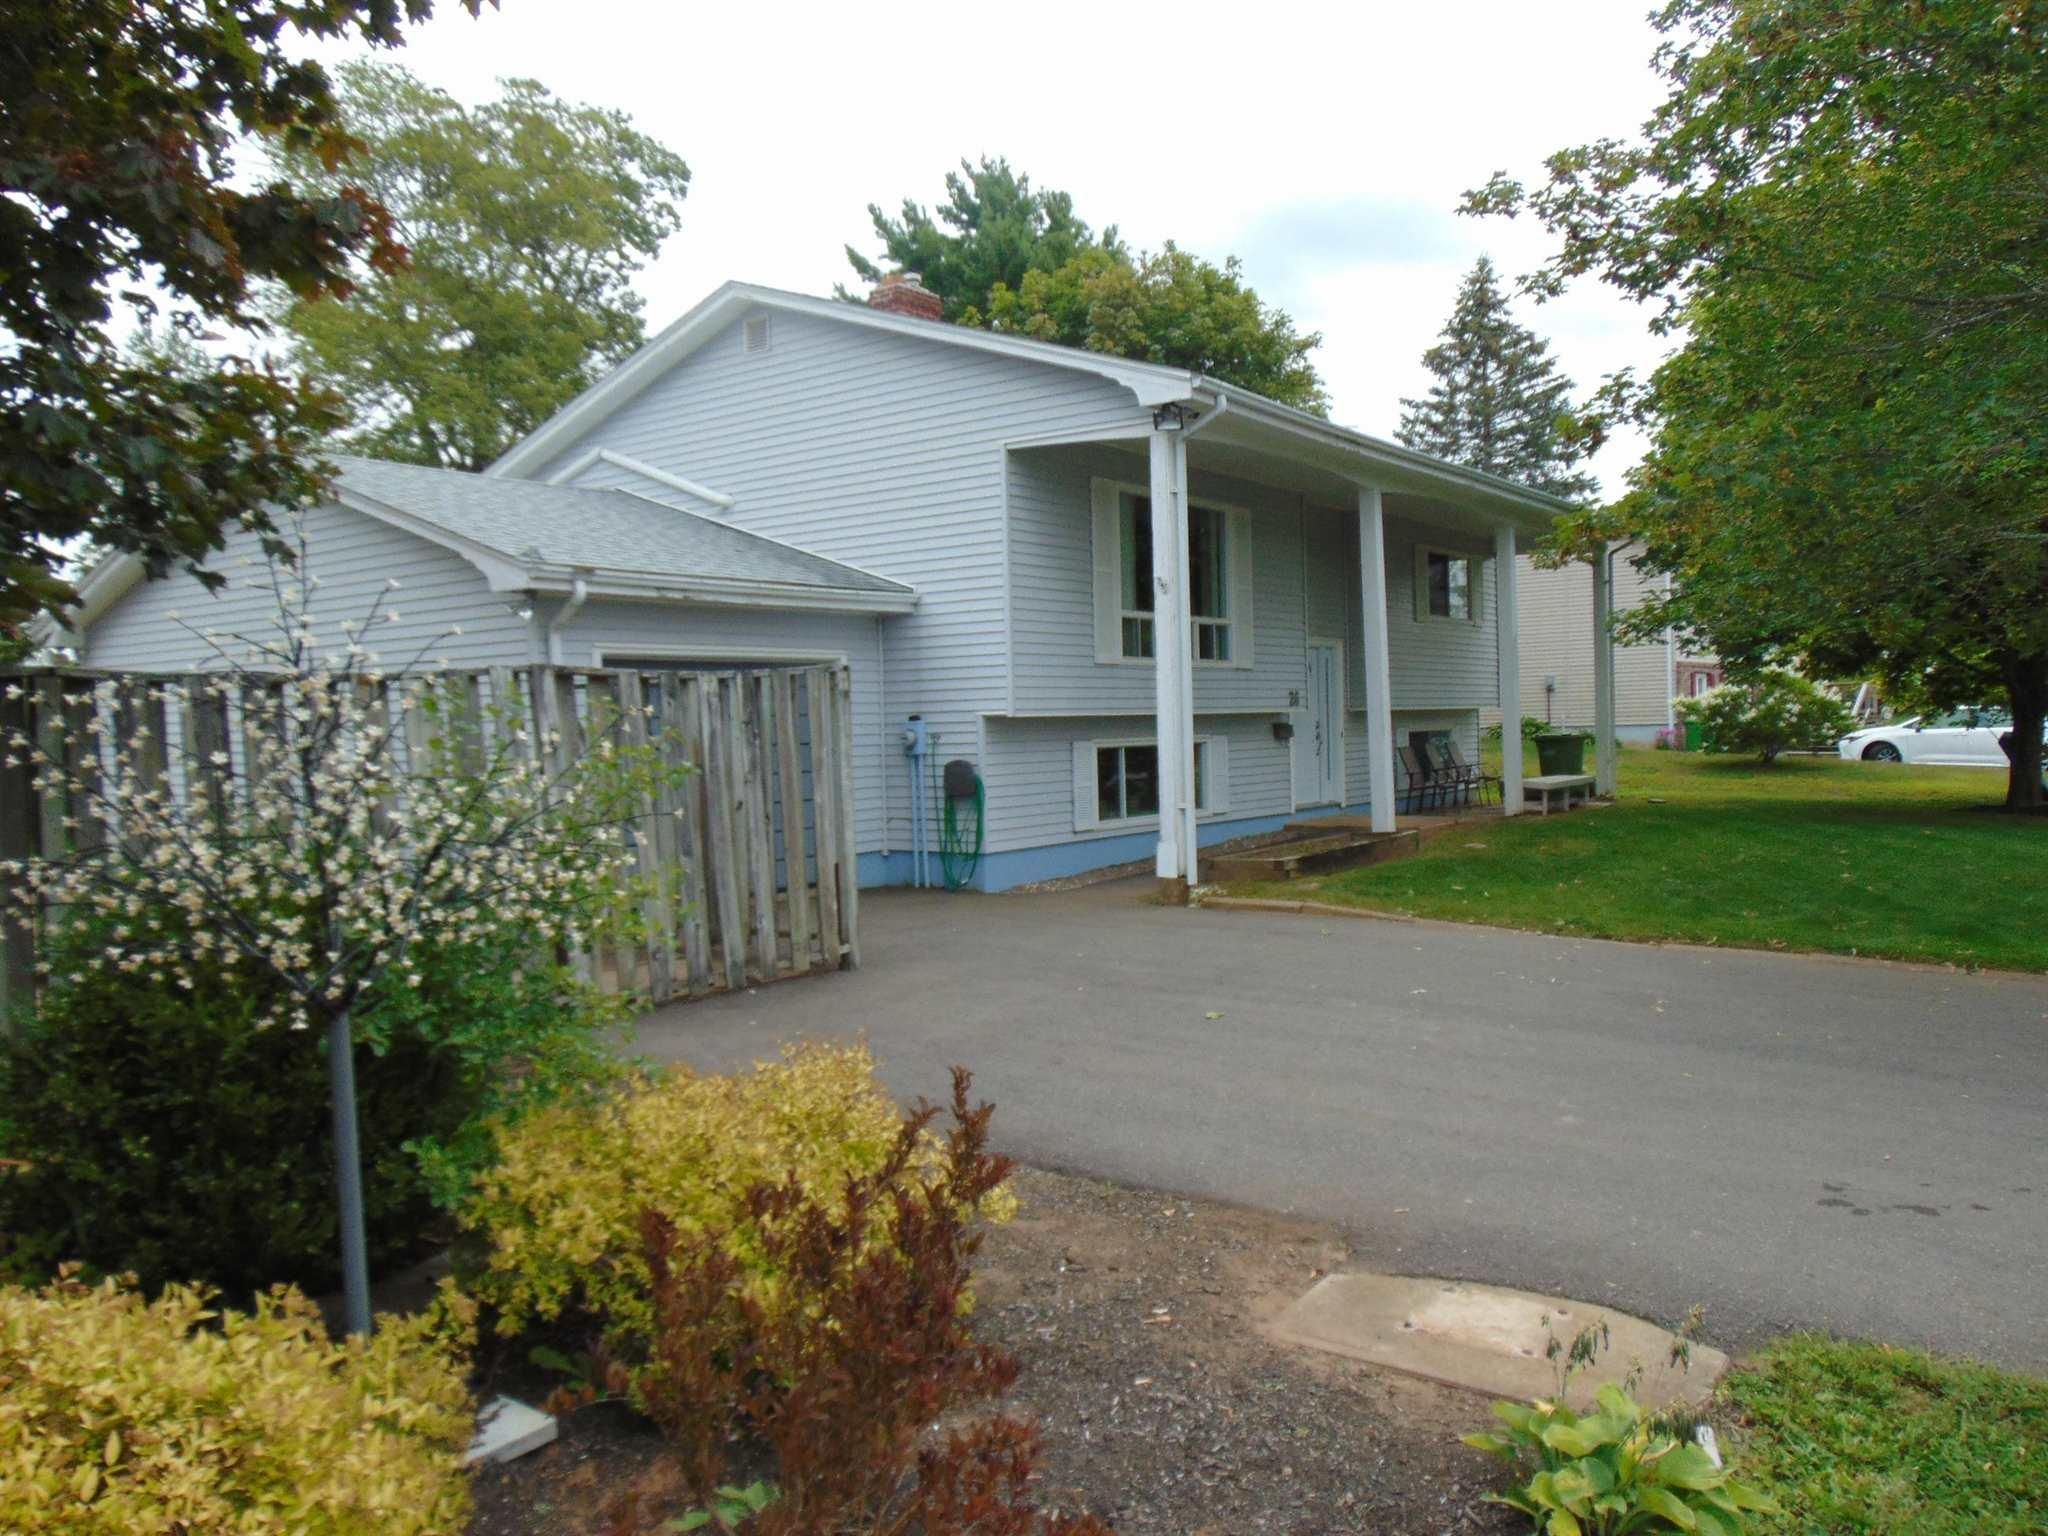 Main Photo: 26 Apple Tree Lane in Kentville: 404-Kings County Residential for sale (Annapolis Valley)  : MLS®# 202121448